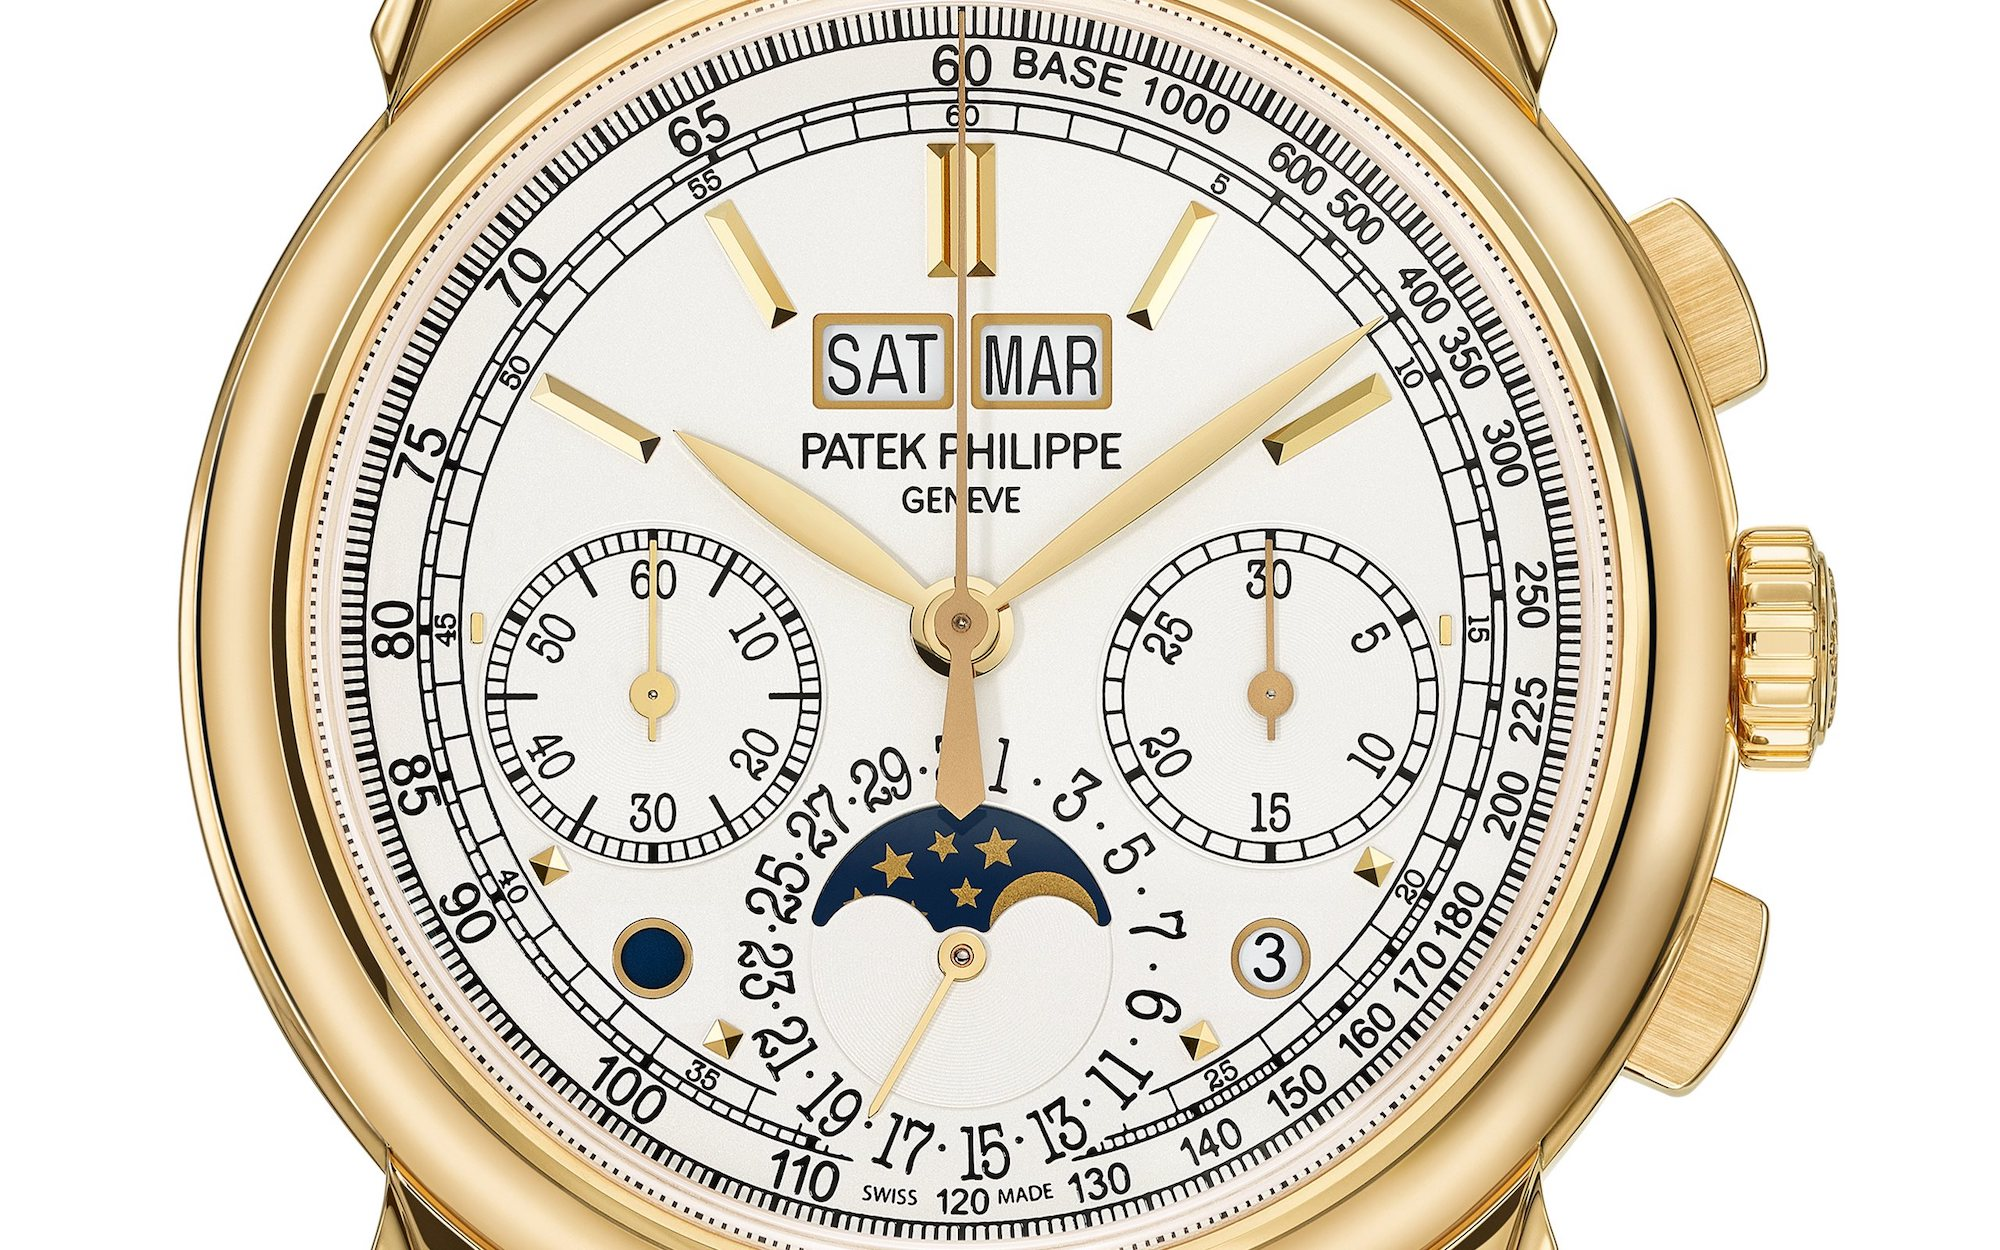 Patek Philippe 5270J Grand Complication detalle esfera